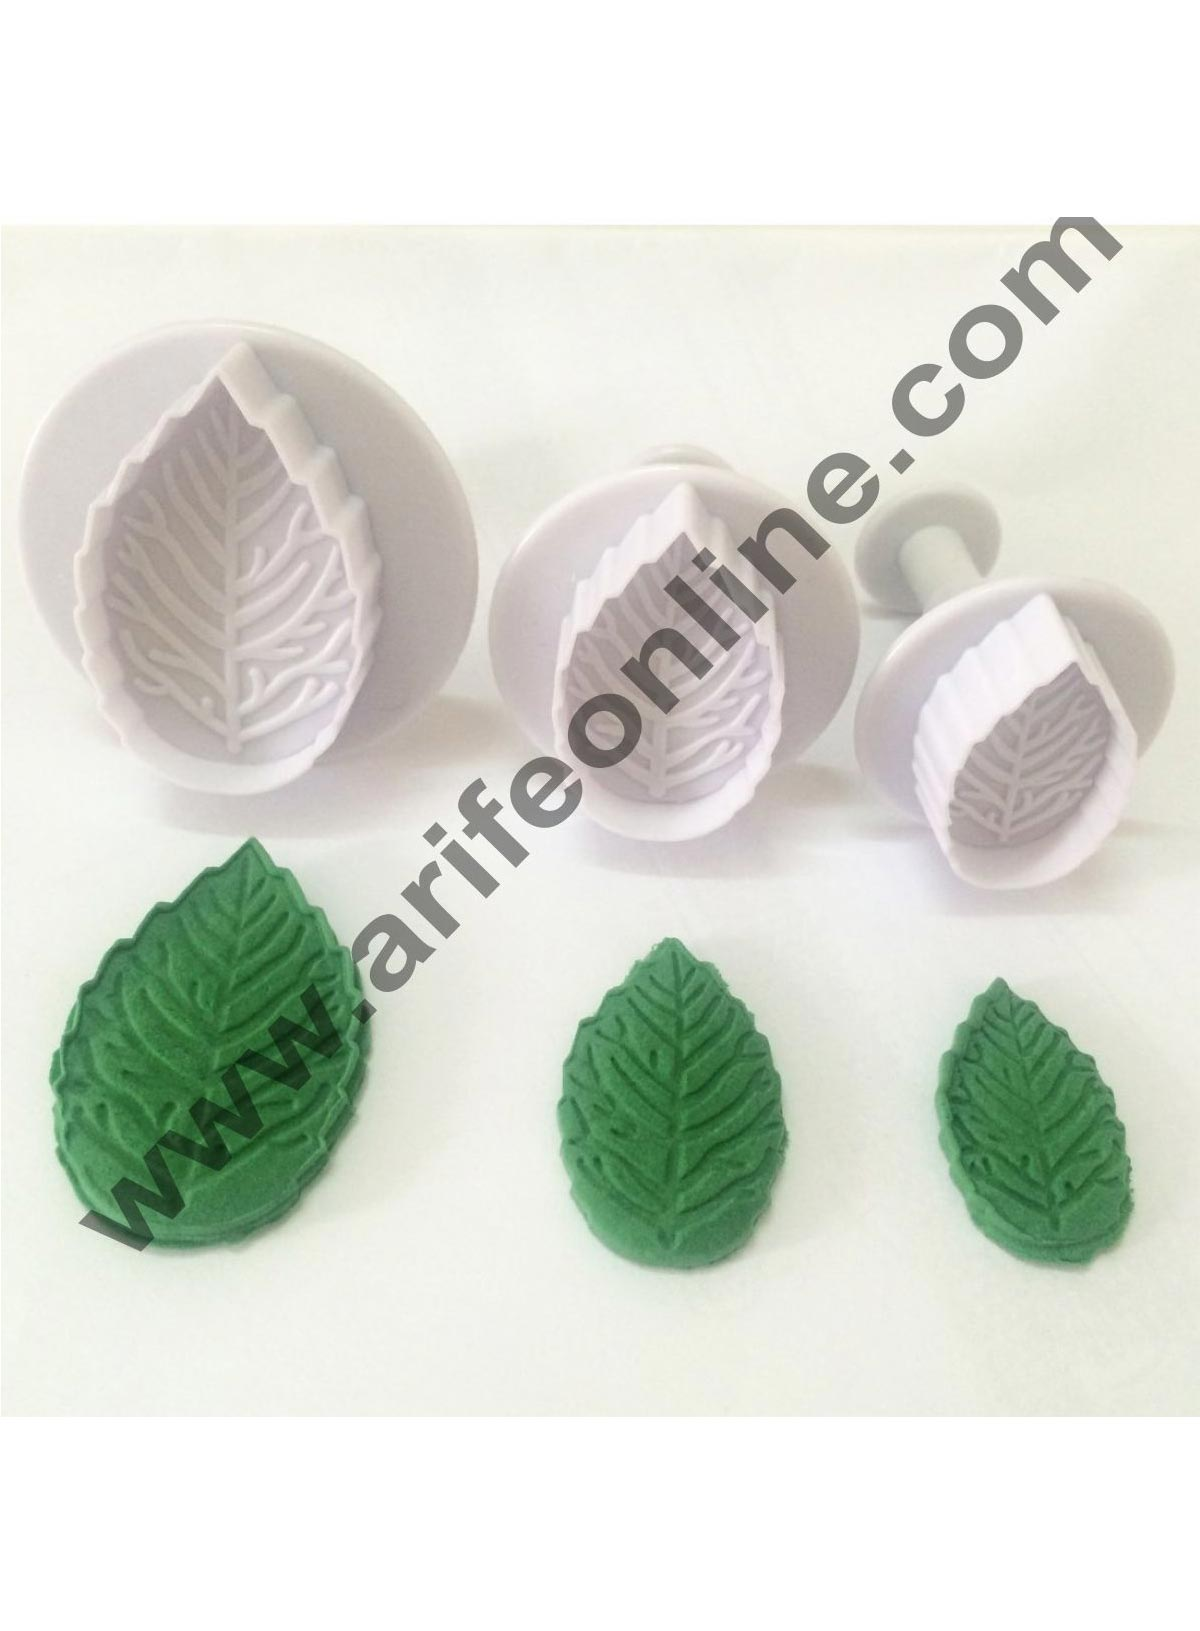 3-Piece Butterfly Fondant Cake Cookie Plunger Cutter Shape Set           White